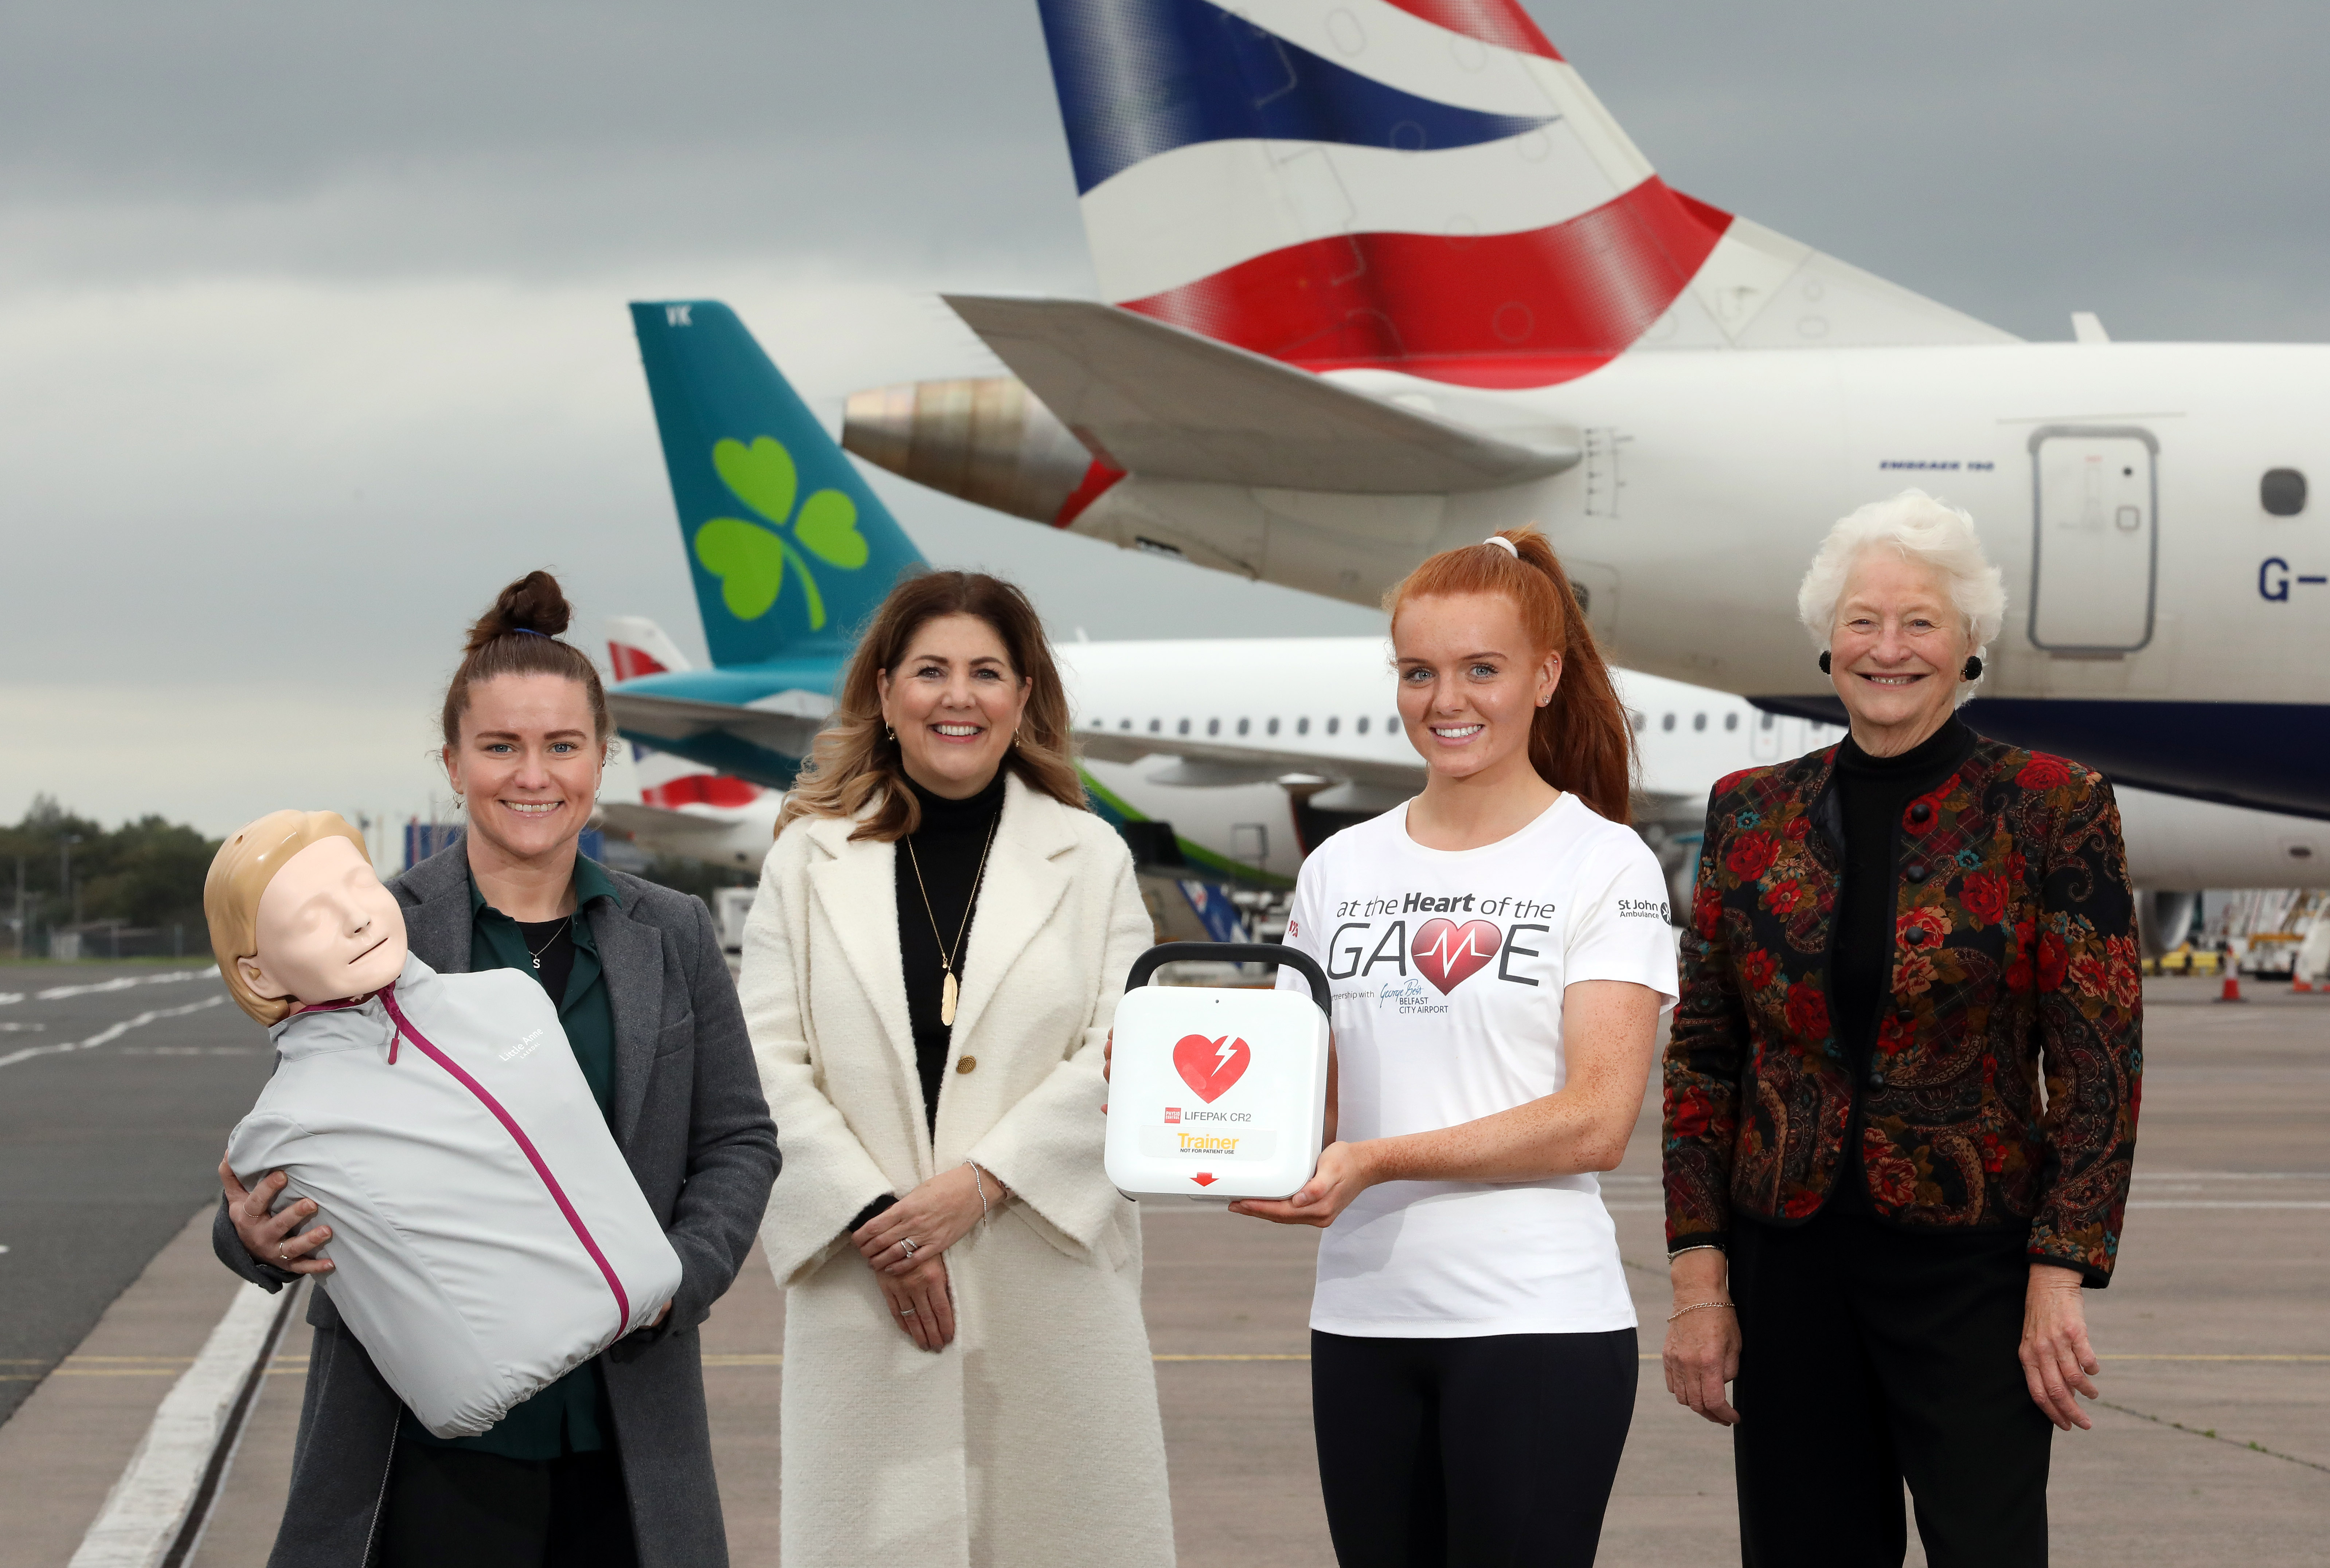 At the Heart of the Game - Lady Mary Peters, Dr Shirley McCay, Anna Pim, Michelle Hatfield